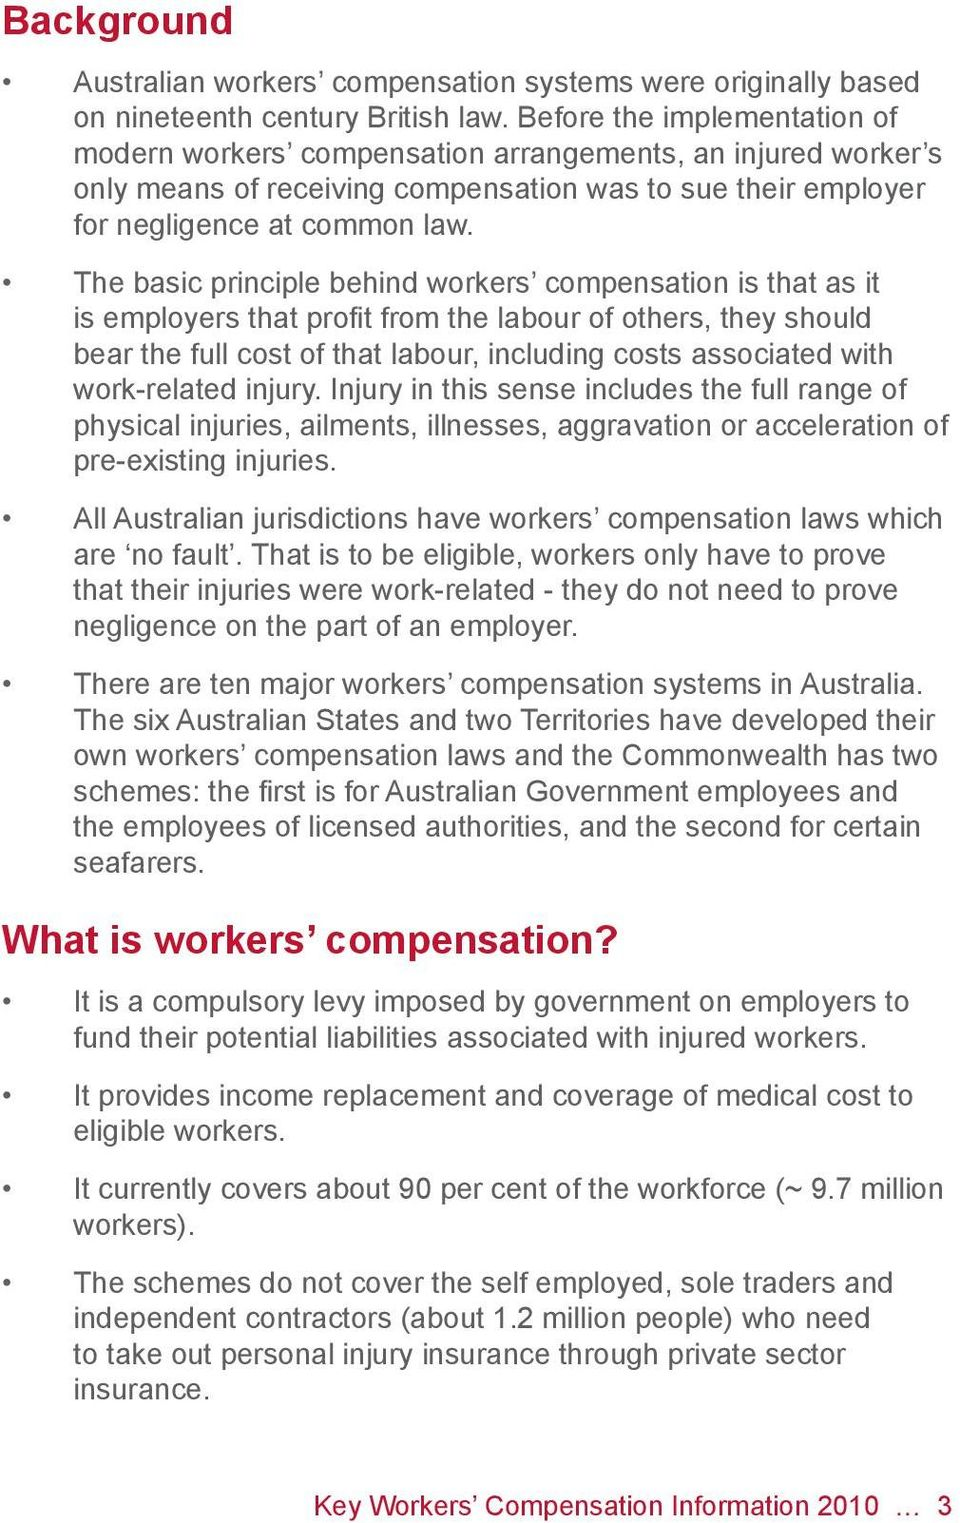 The basic principle behind workers compensation is that as it is employers that profit from the labour of others, they should bear the full cost of that labour, including costs associated with